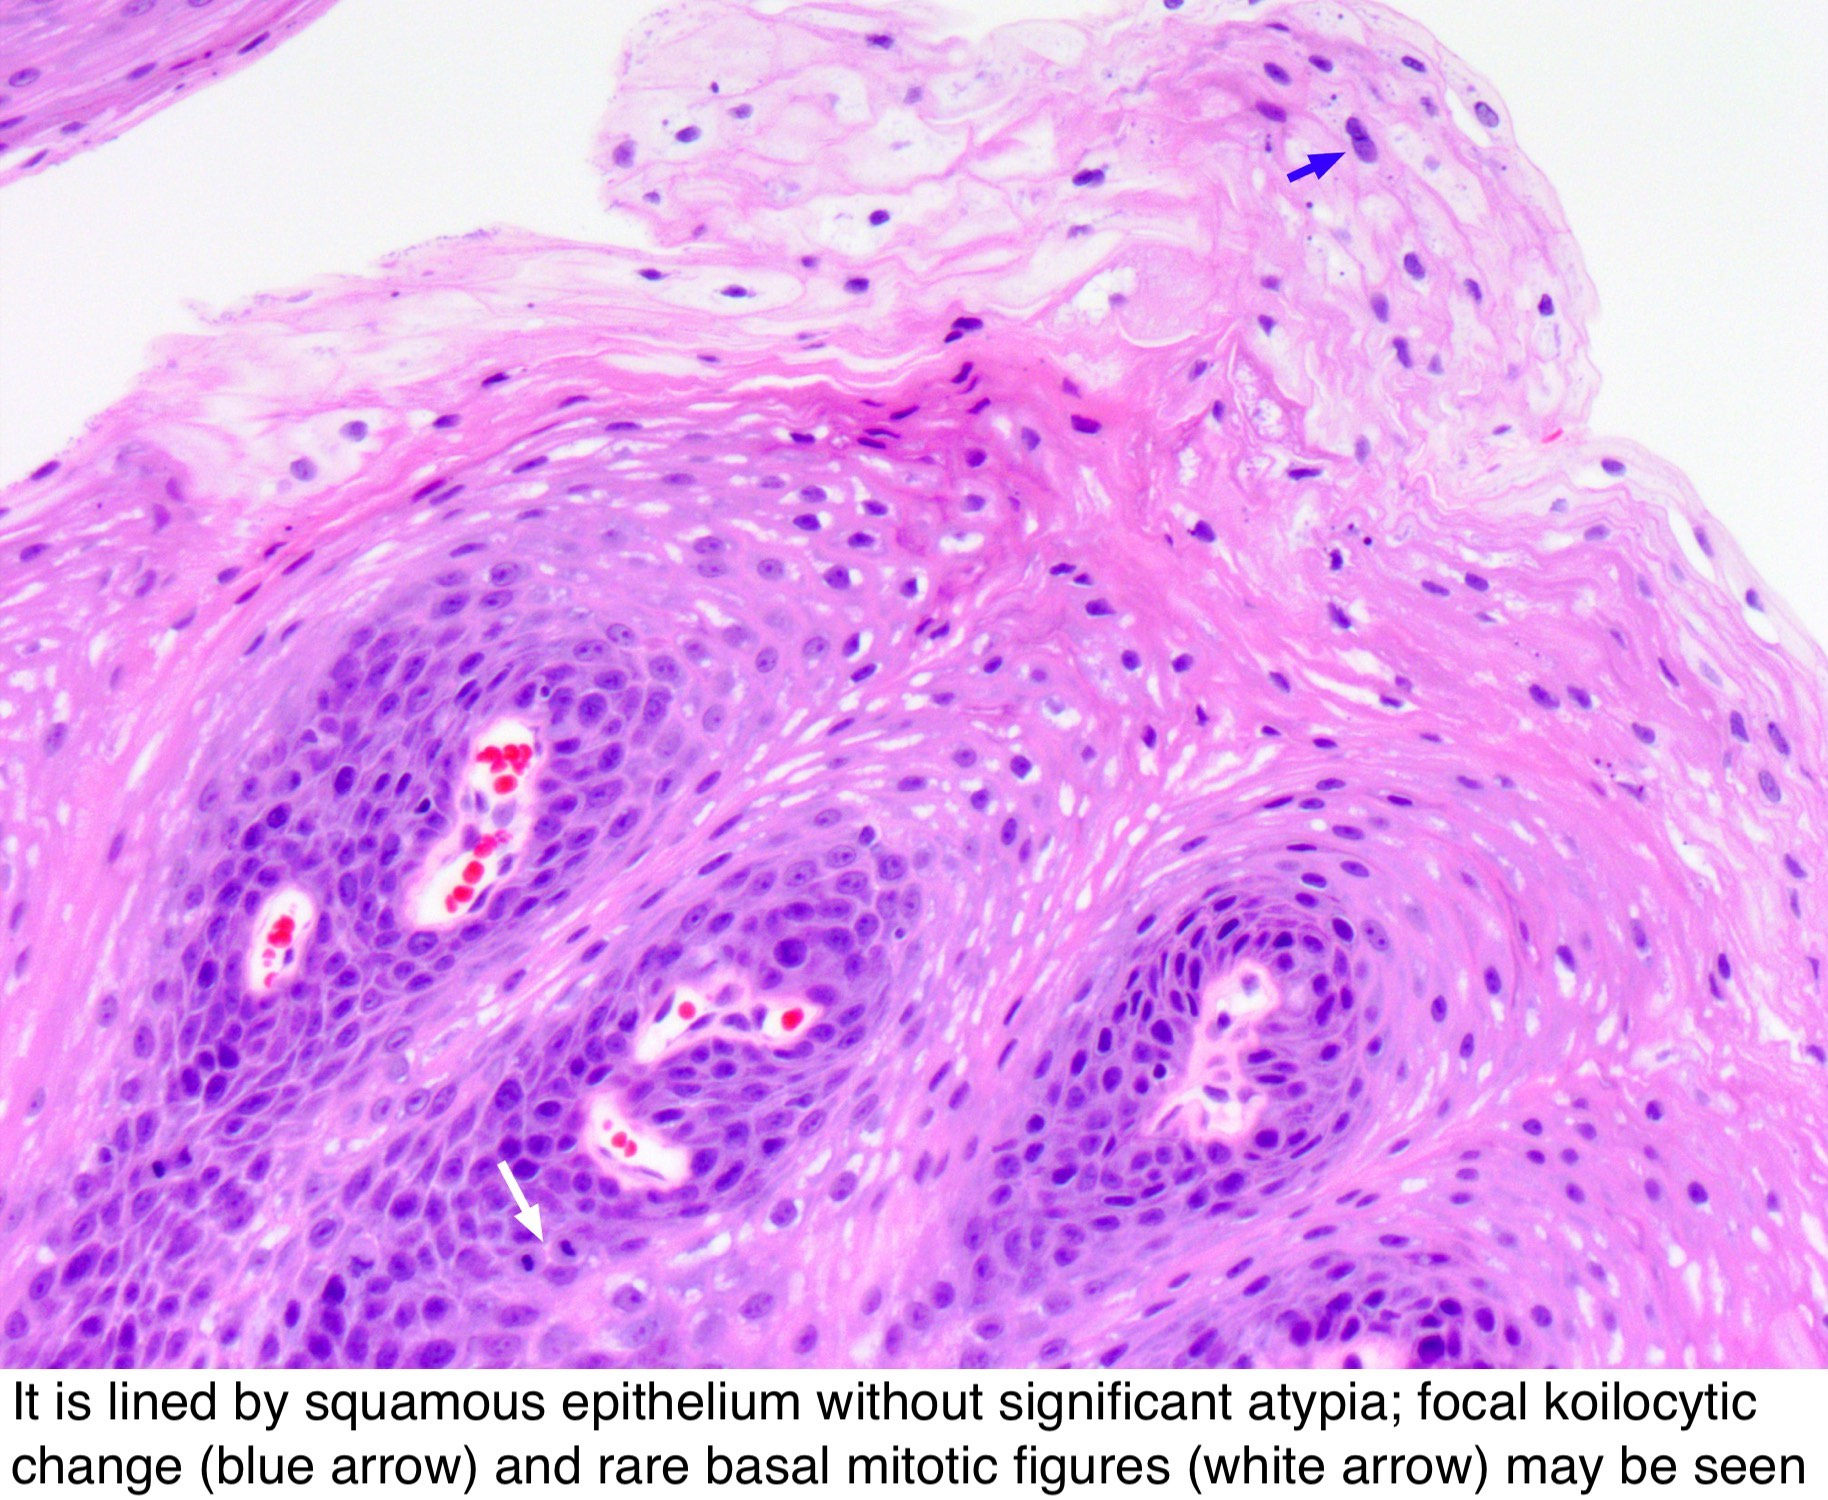 inverted papilloma nasal cavity pathology outlines cancer que signo es compatible